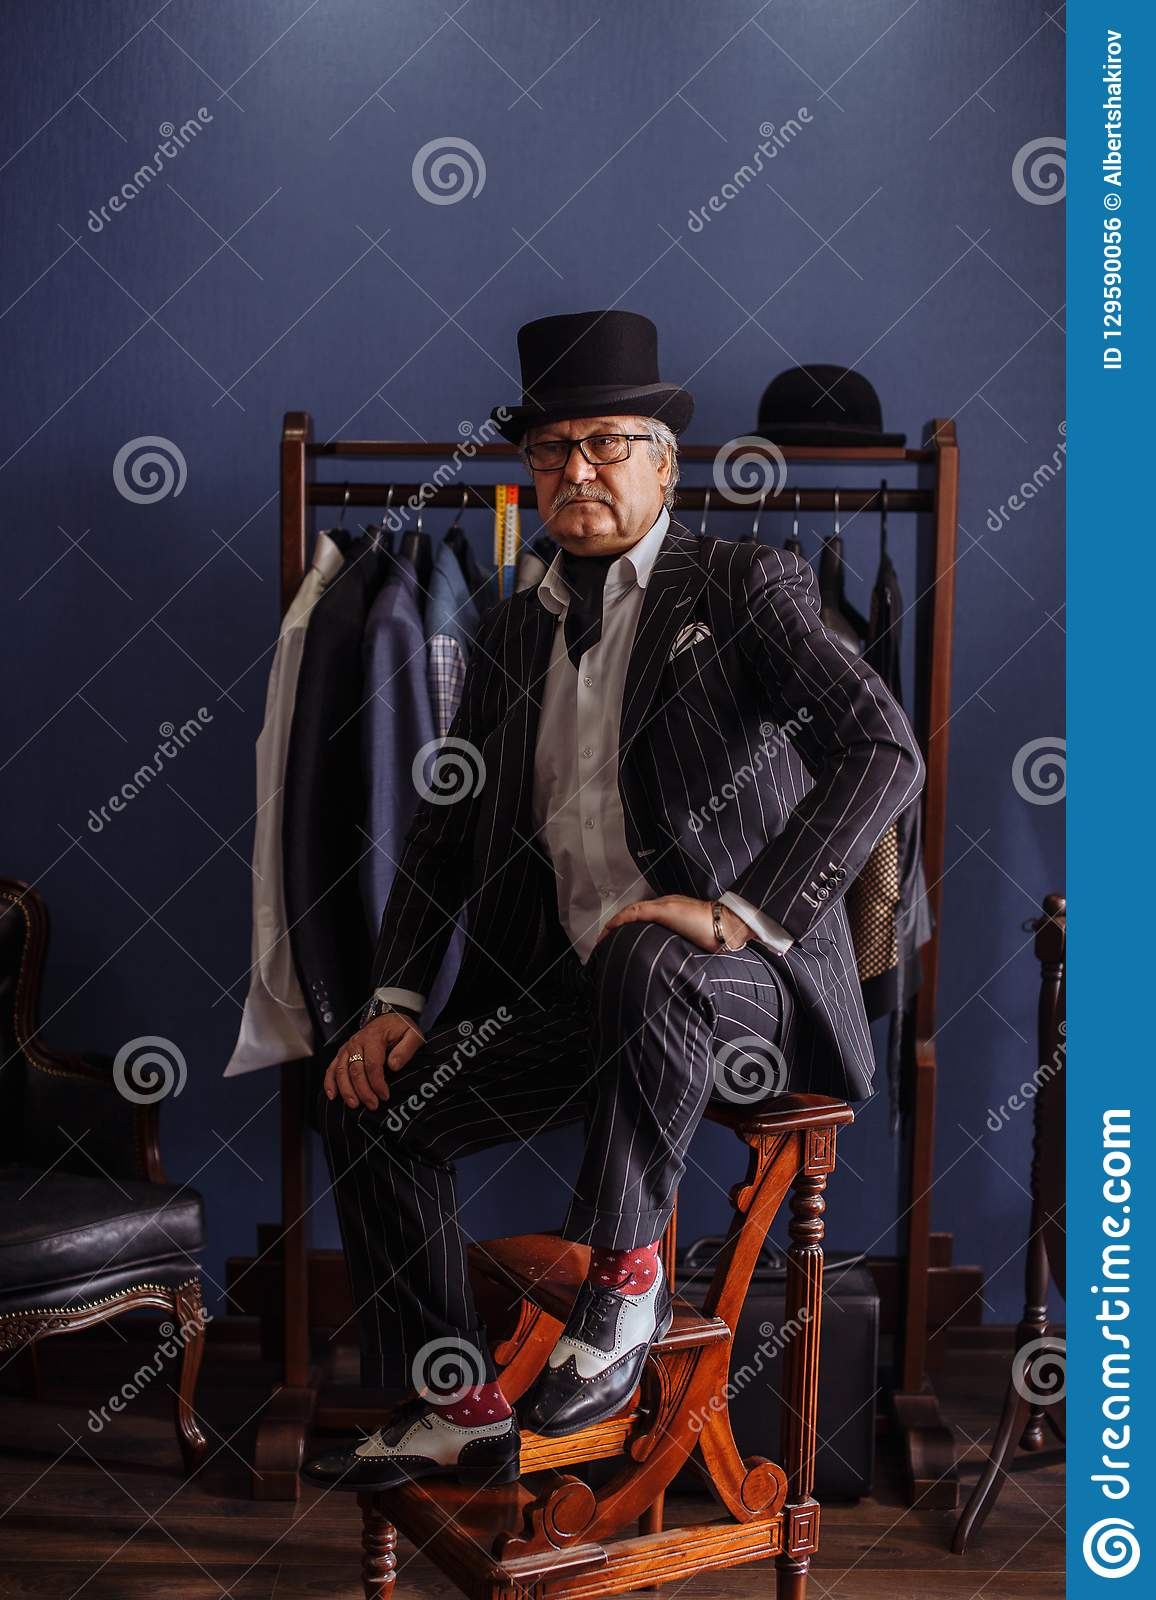 Terrific Confident Retro Style Fashion Man Sitting On Wooden Stool Ocoug Best Dining Table And Chair Ideas Images Ocougorg